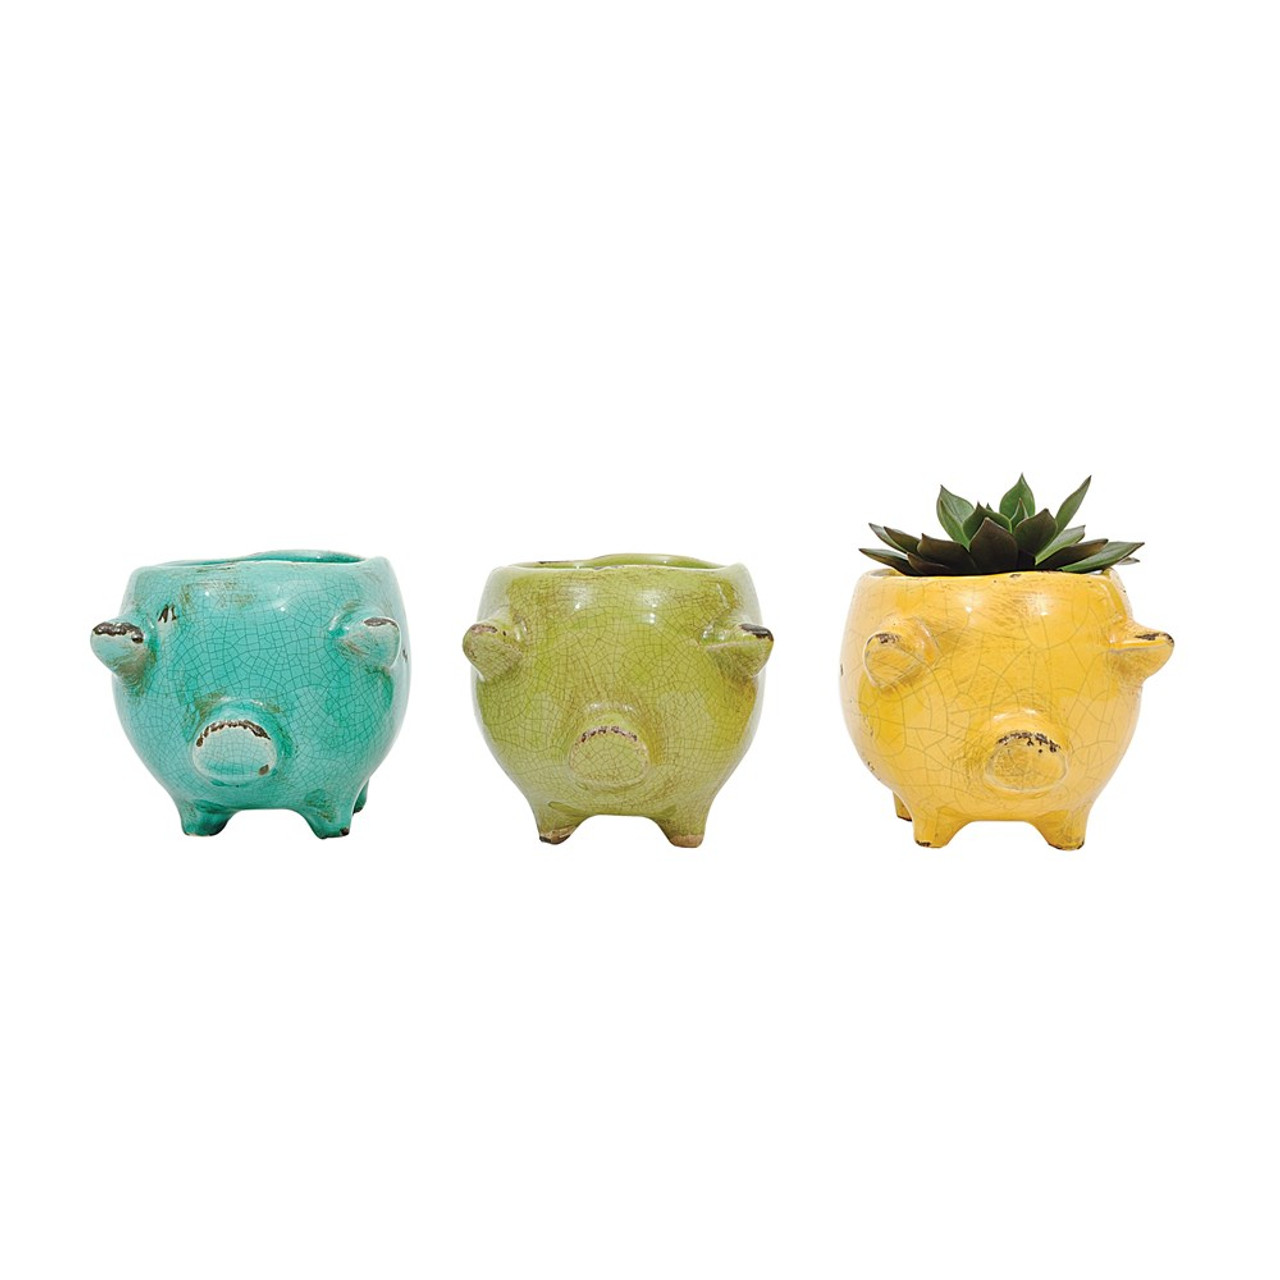 Cute & Colorful Green Terracotta Pig Planter.